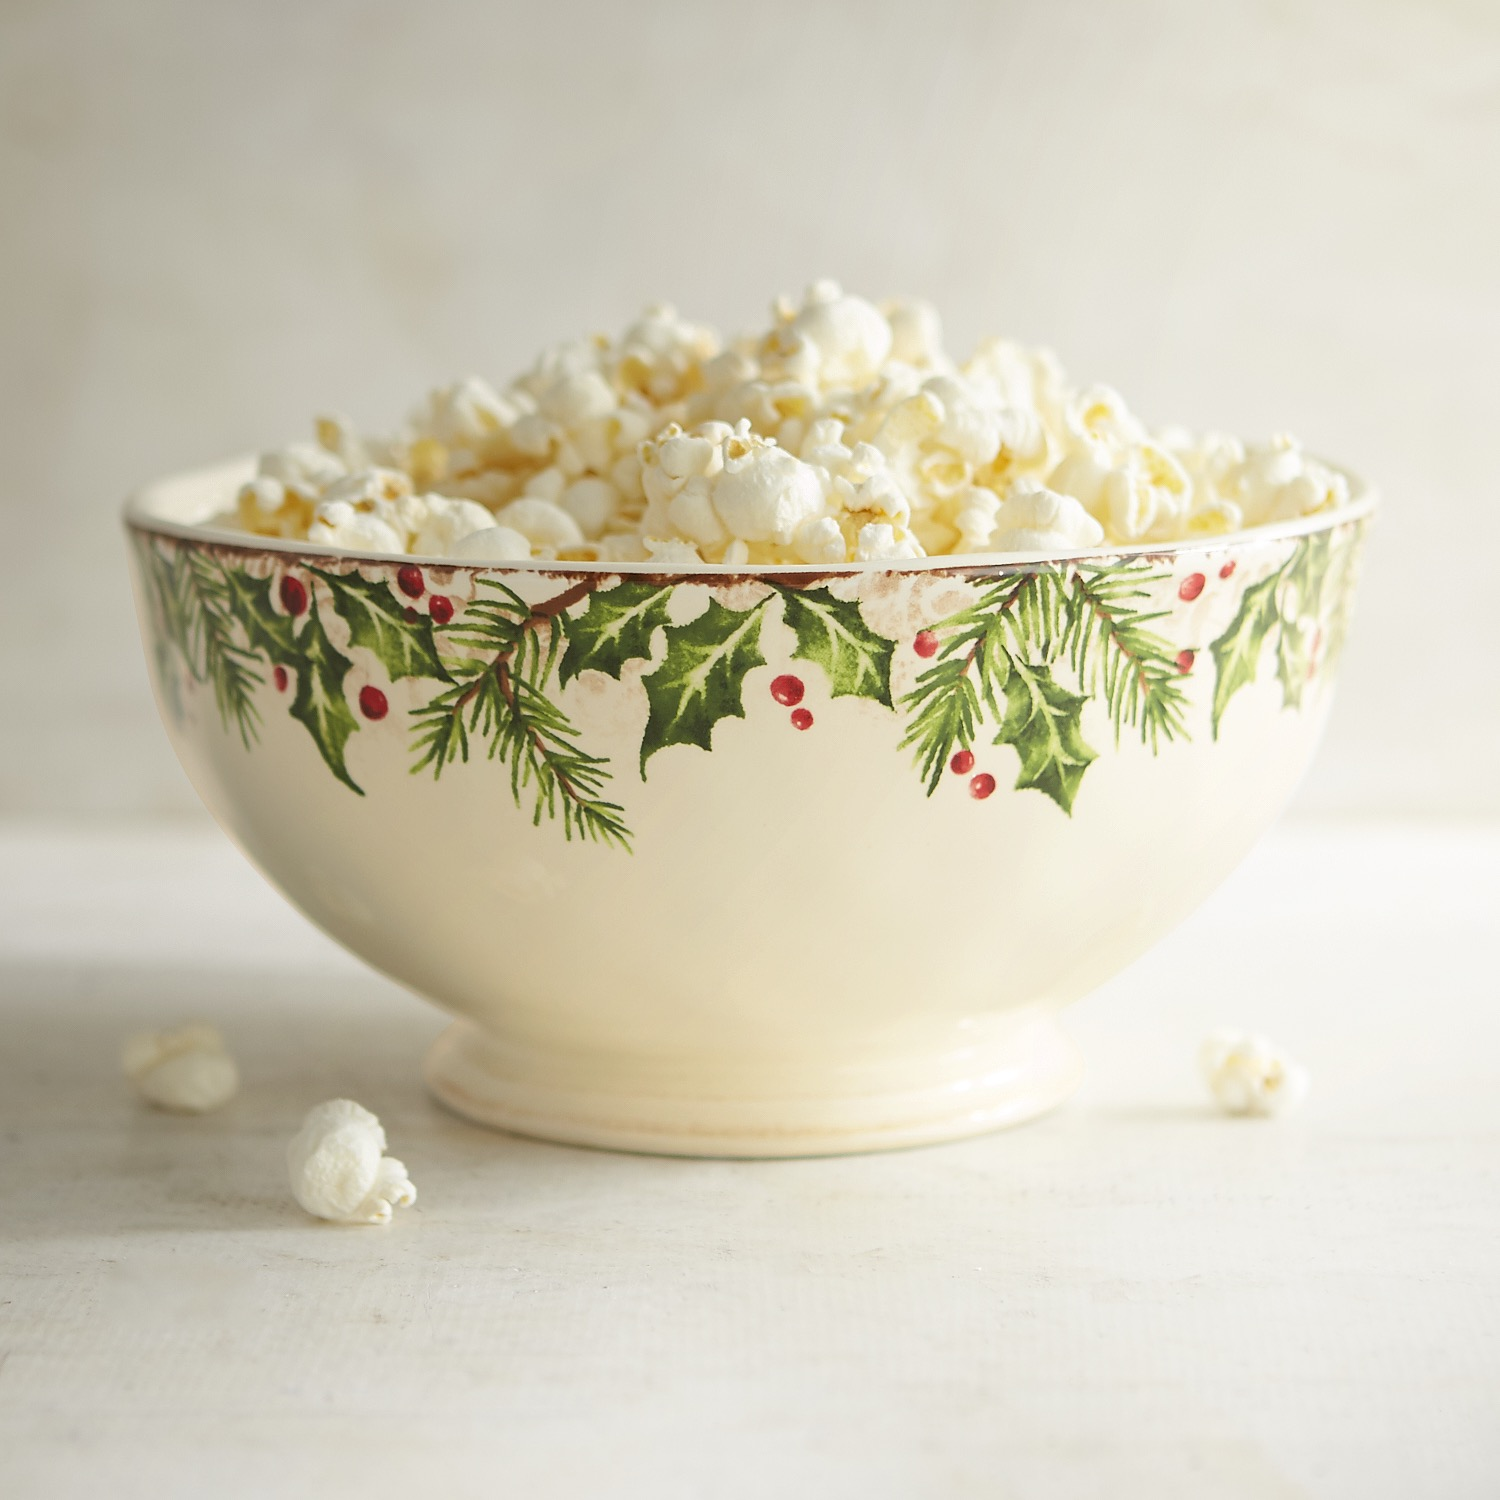 Winter's Wonder Holly & Tree Serving Bowl